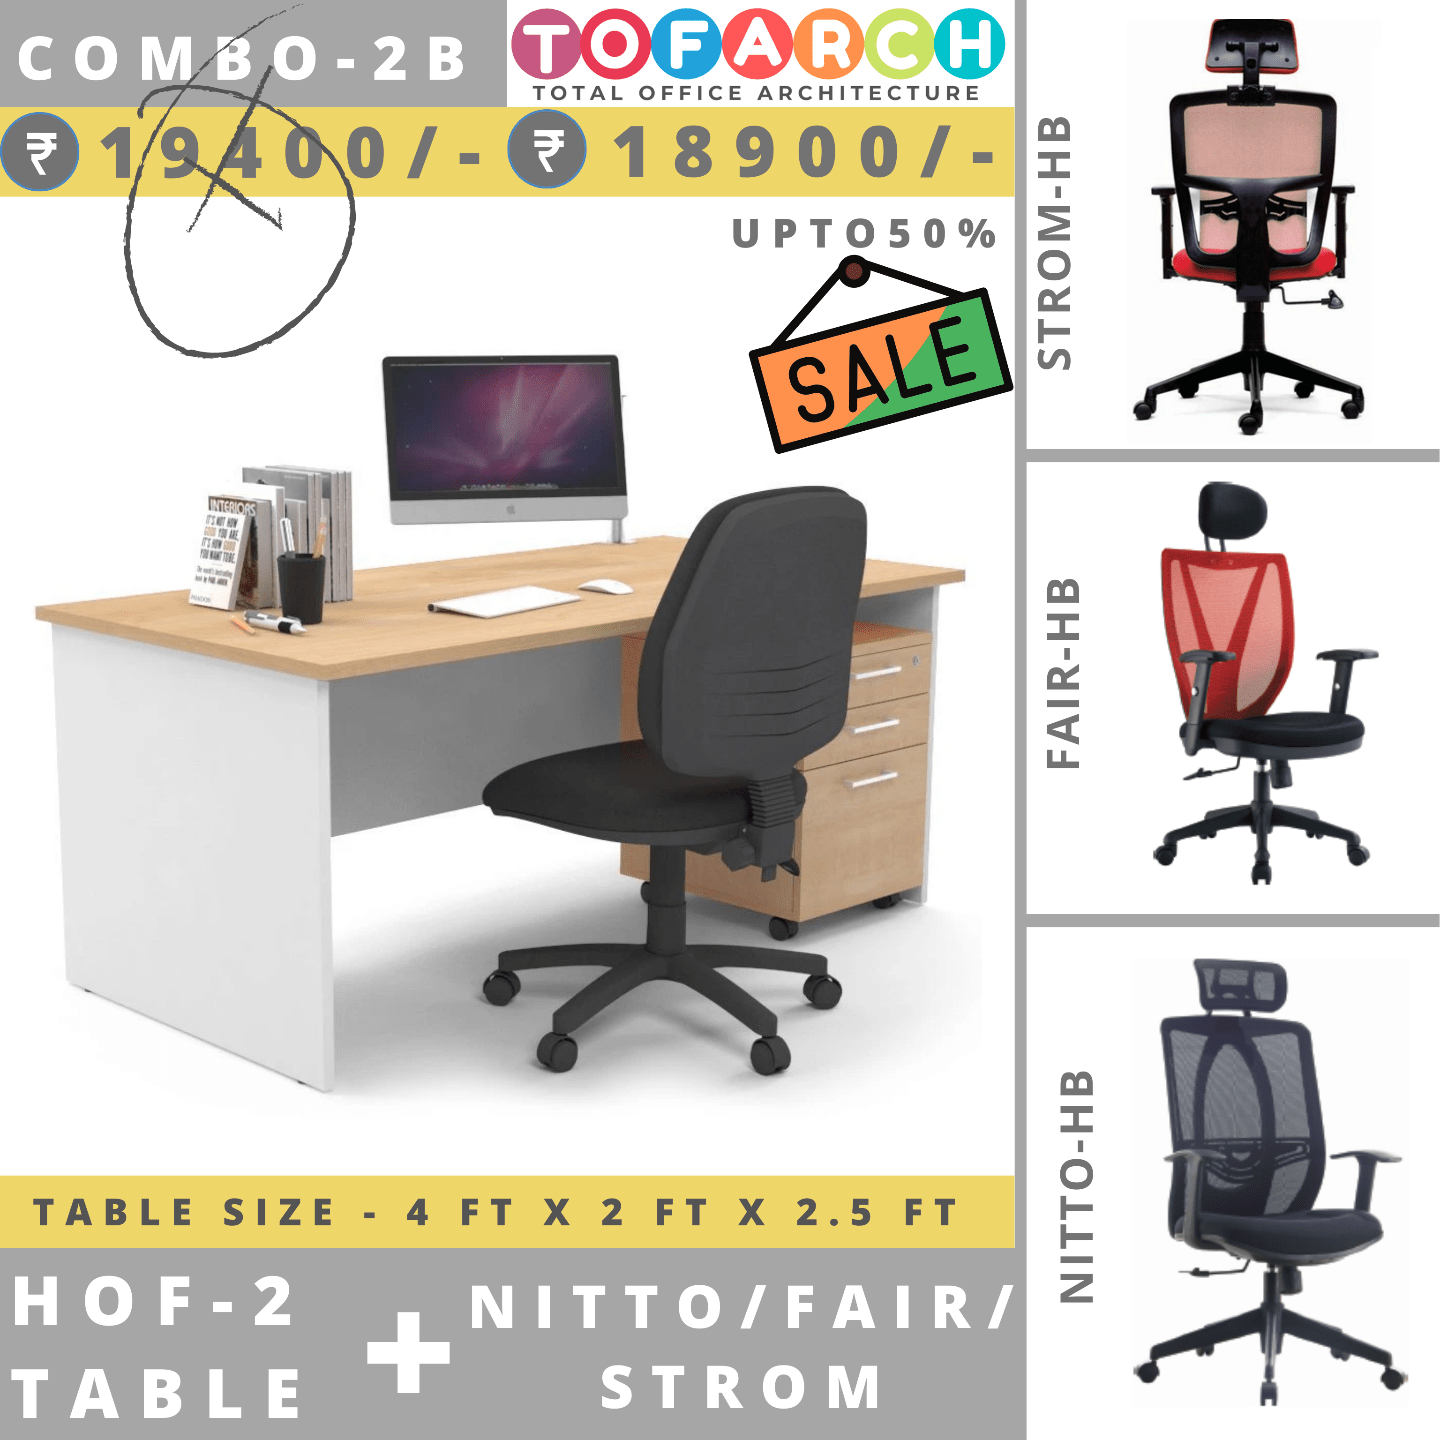 Table Chair Combo - 2B (HOF 2 + NITTO / FAIR / STROM)